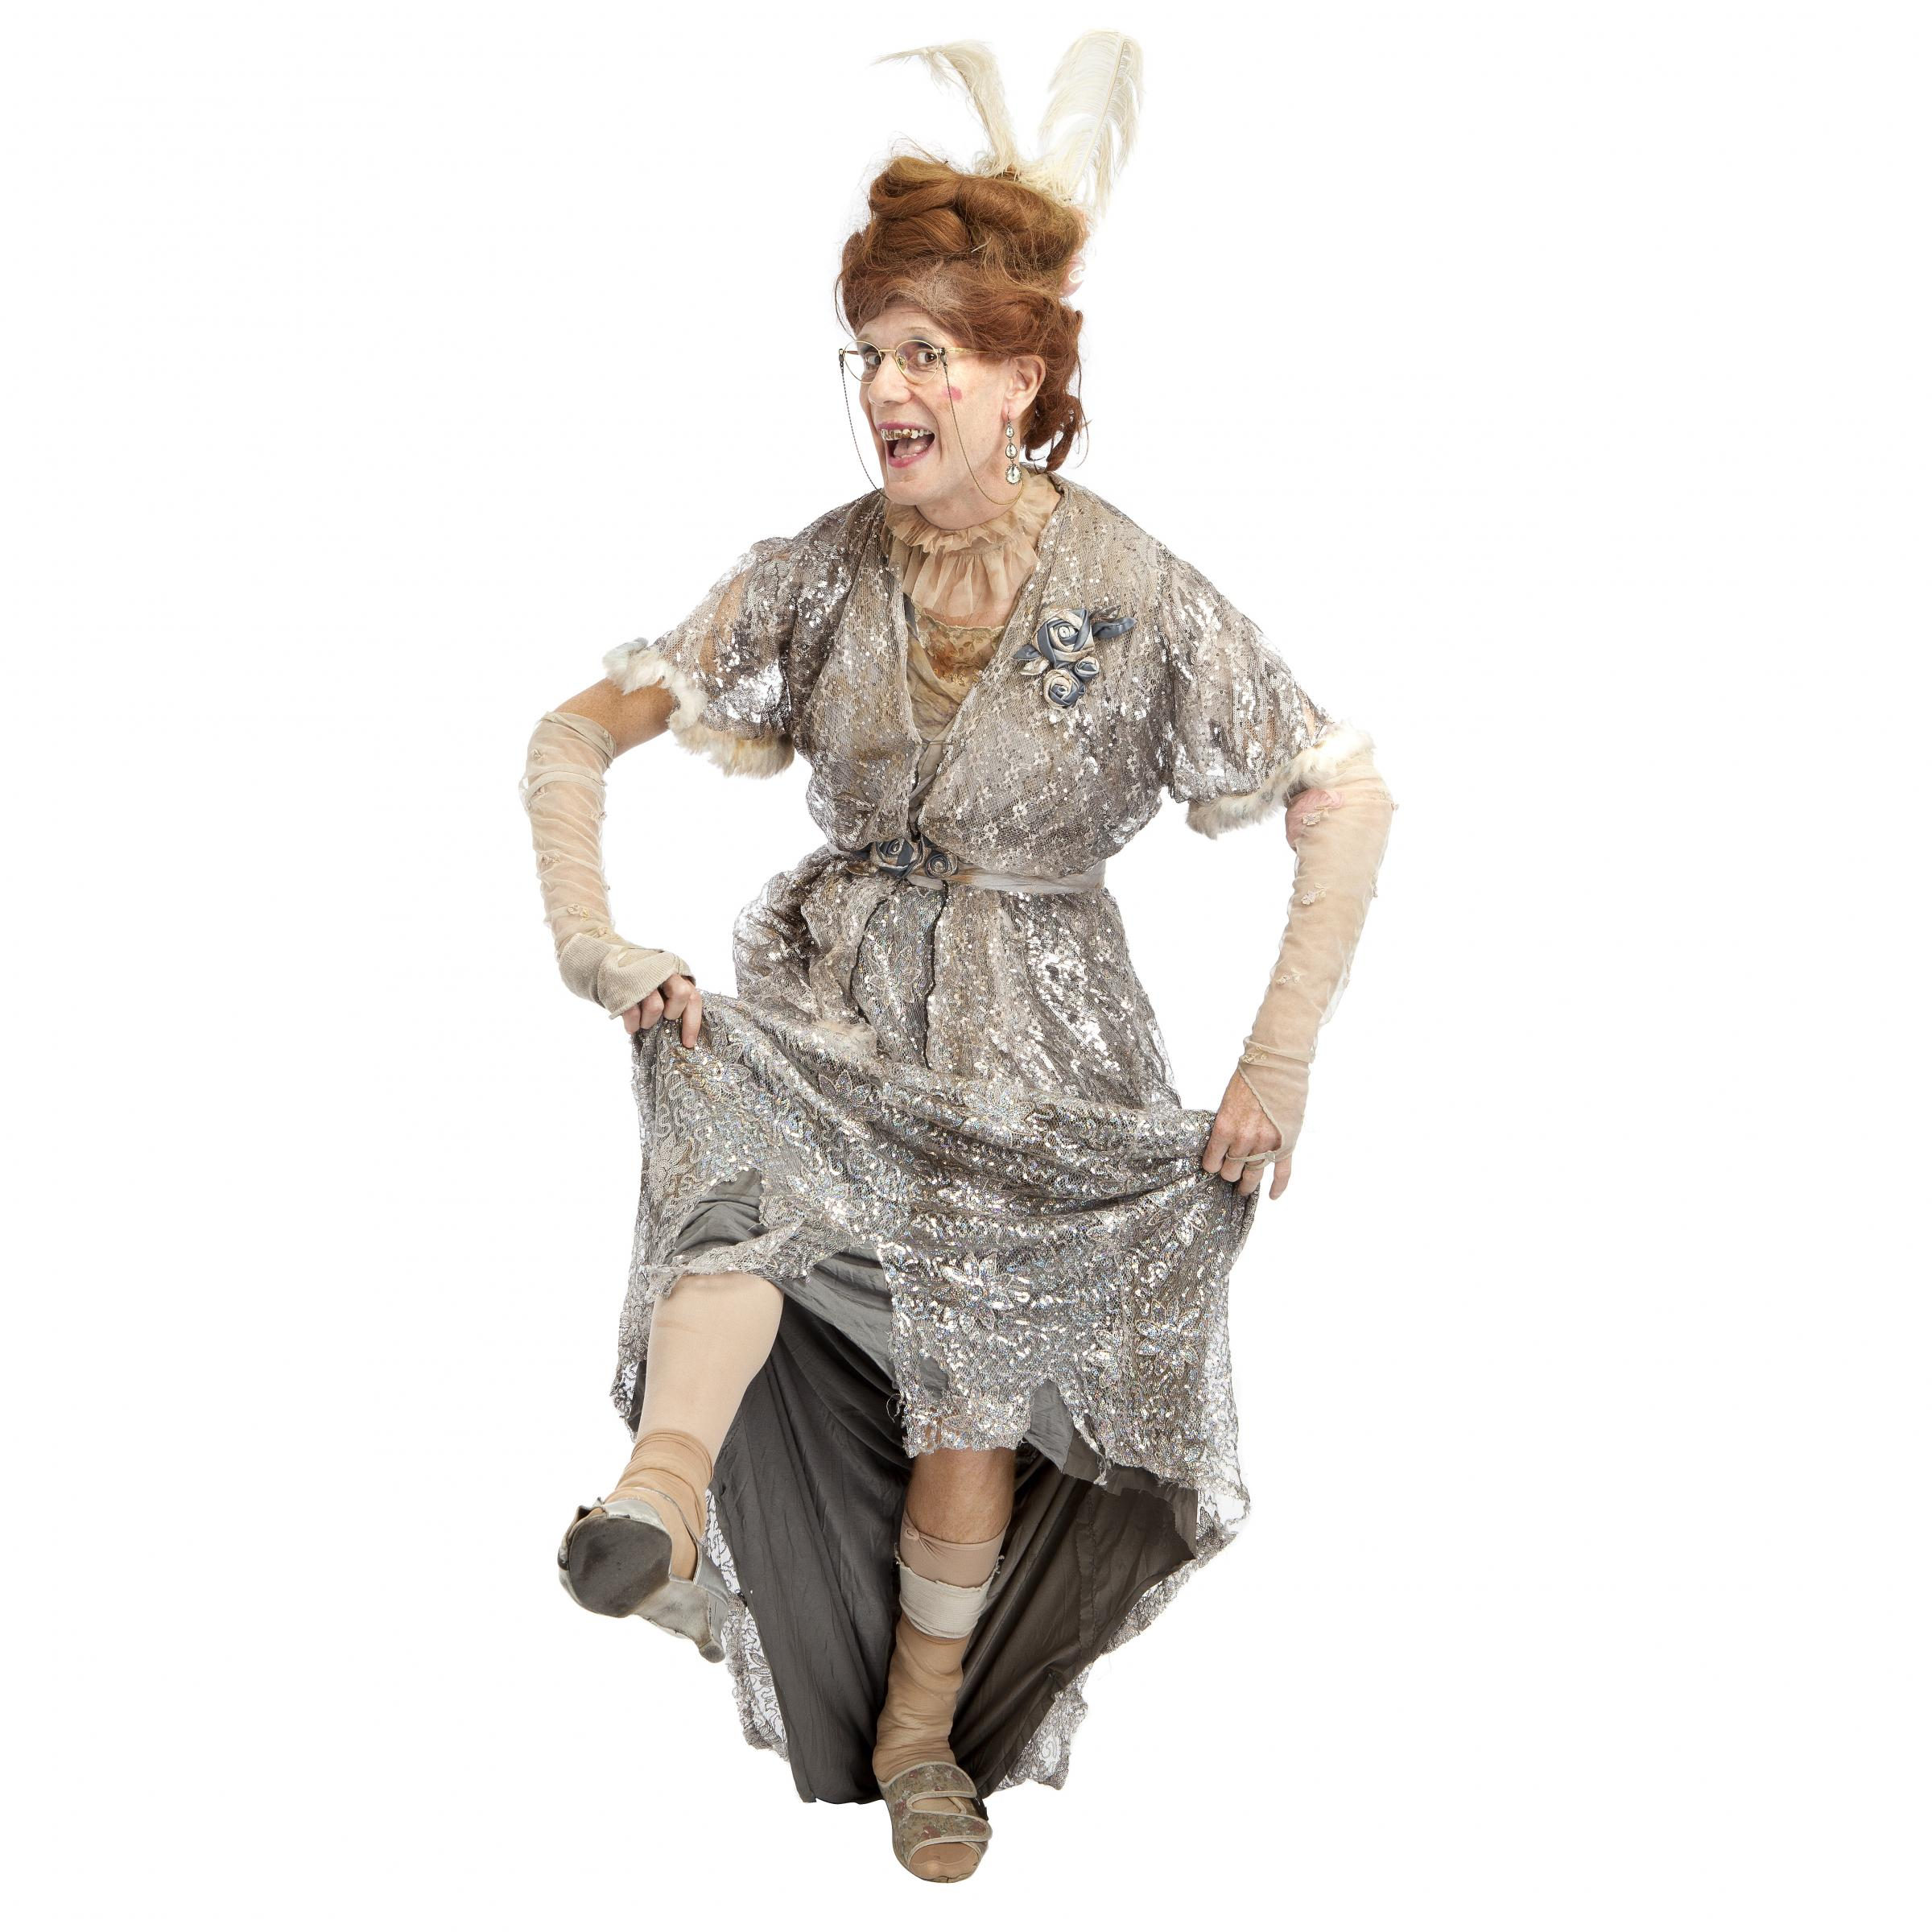 Ida Barr is one of the many acts who will perform at this year's Brighton Festival